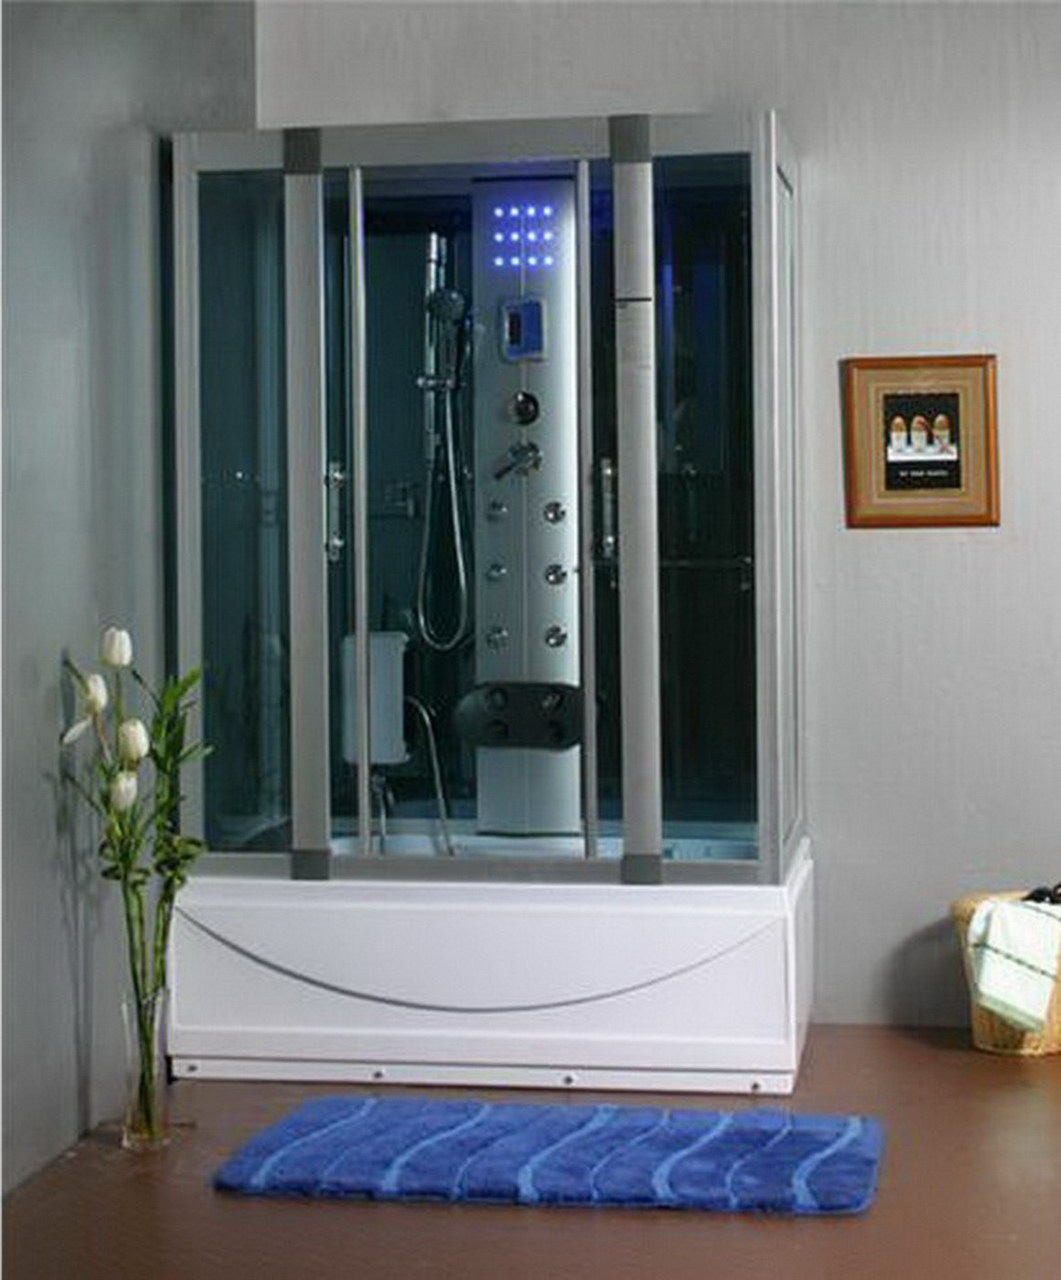 Steam Shower Room With Deep Whirlpool Termostatic Bluetooth 9004